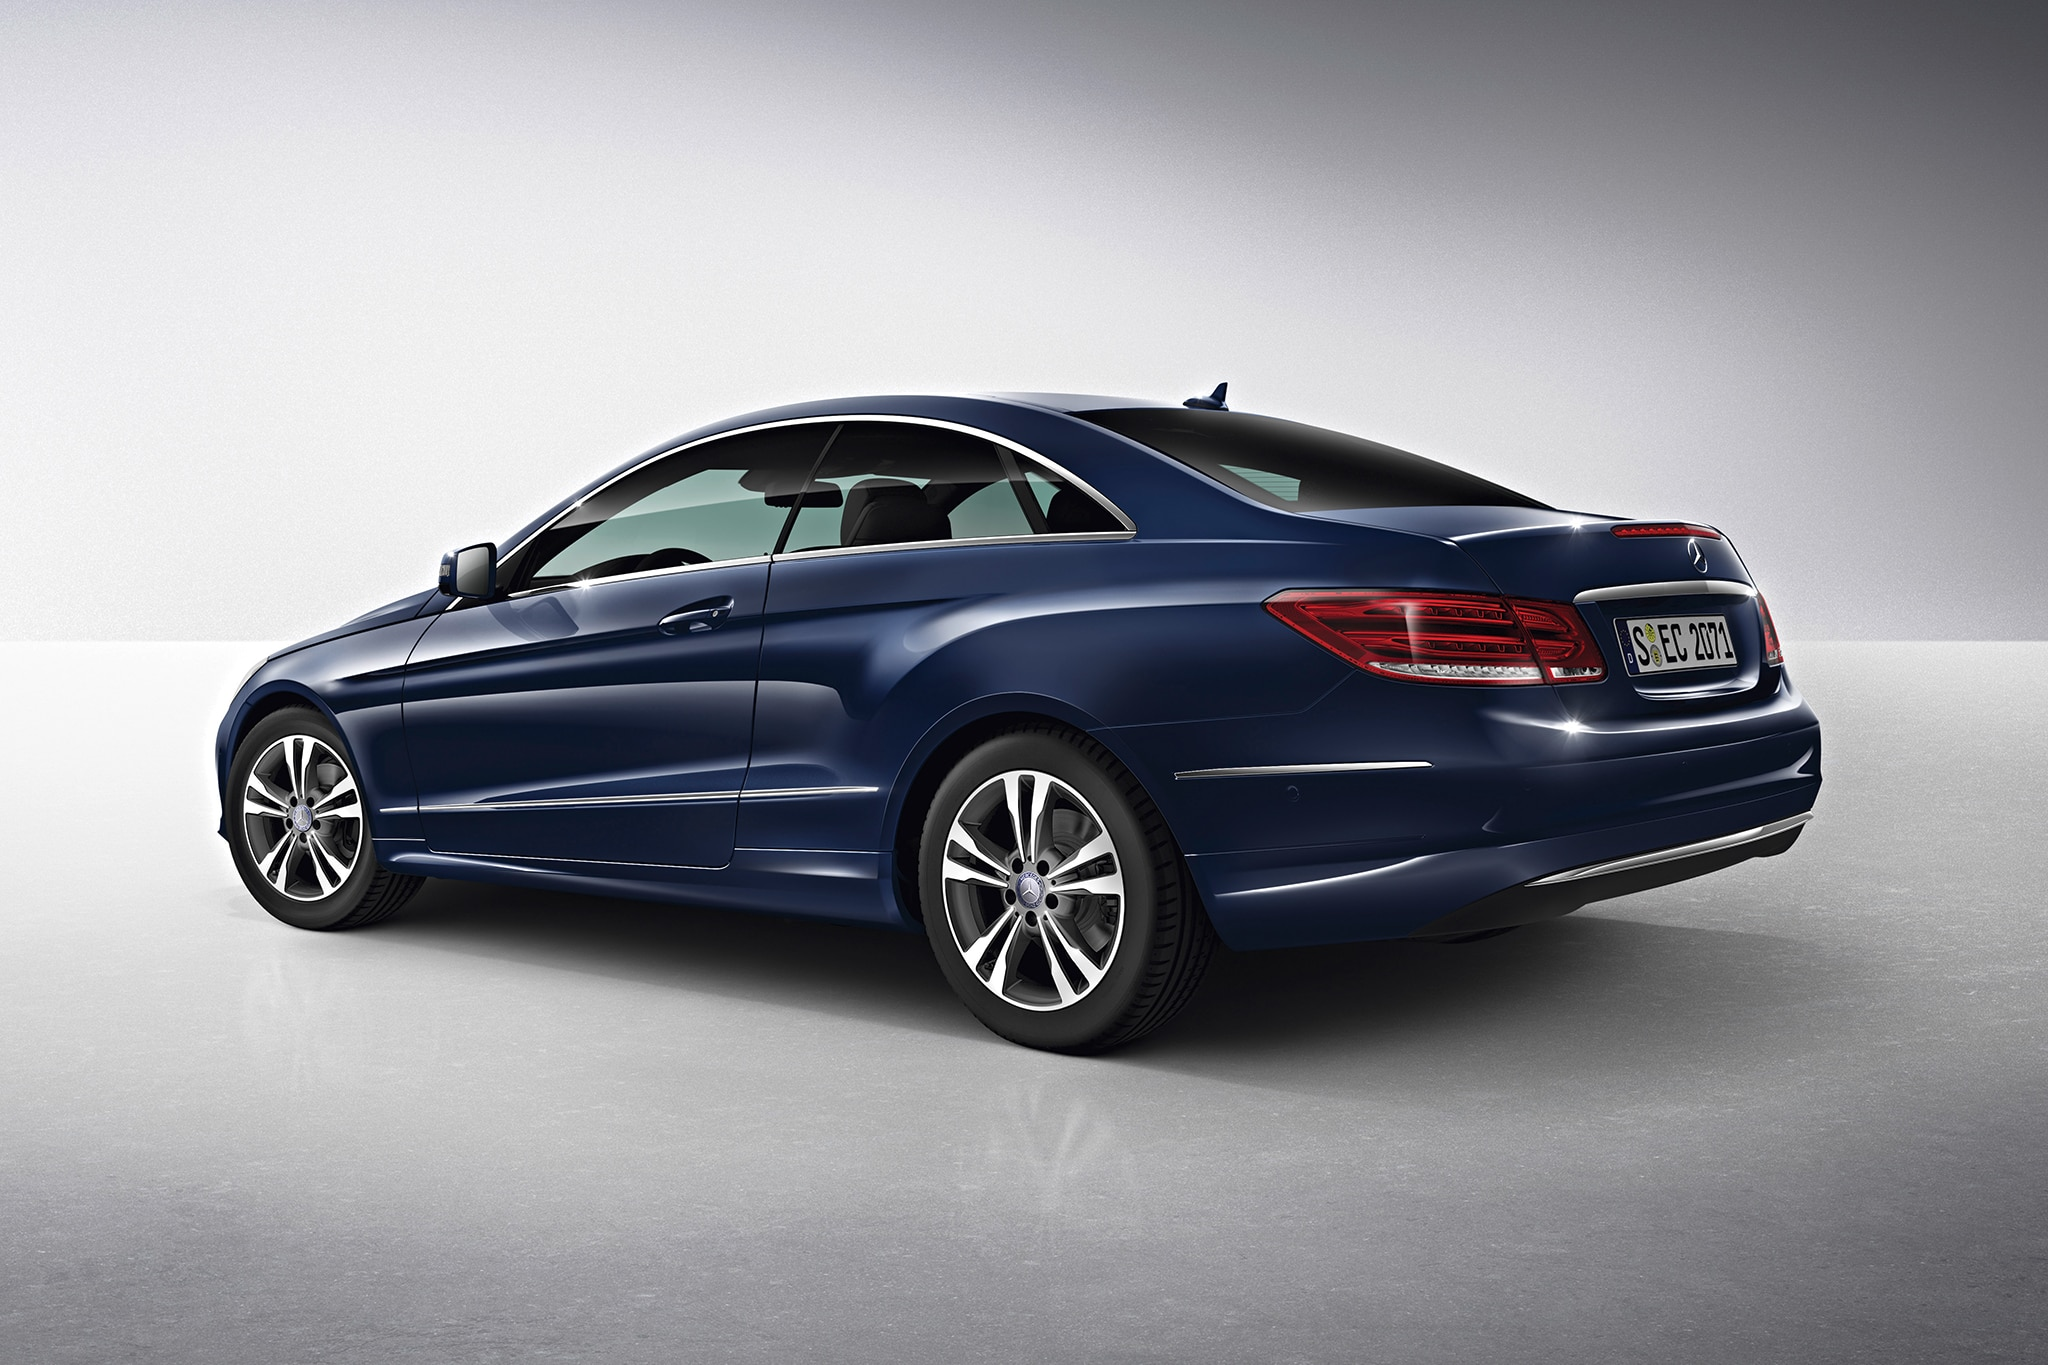 2013 mercedes e class and c class priced e400 hybrid starts at 56 705. Black Bedroom Furniture Sets. Home Design Ideas